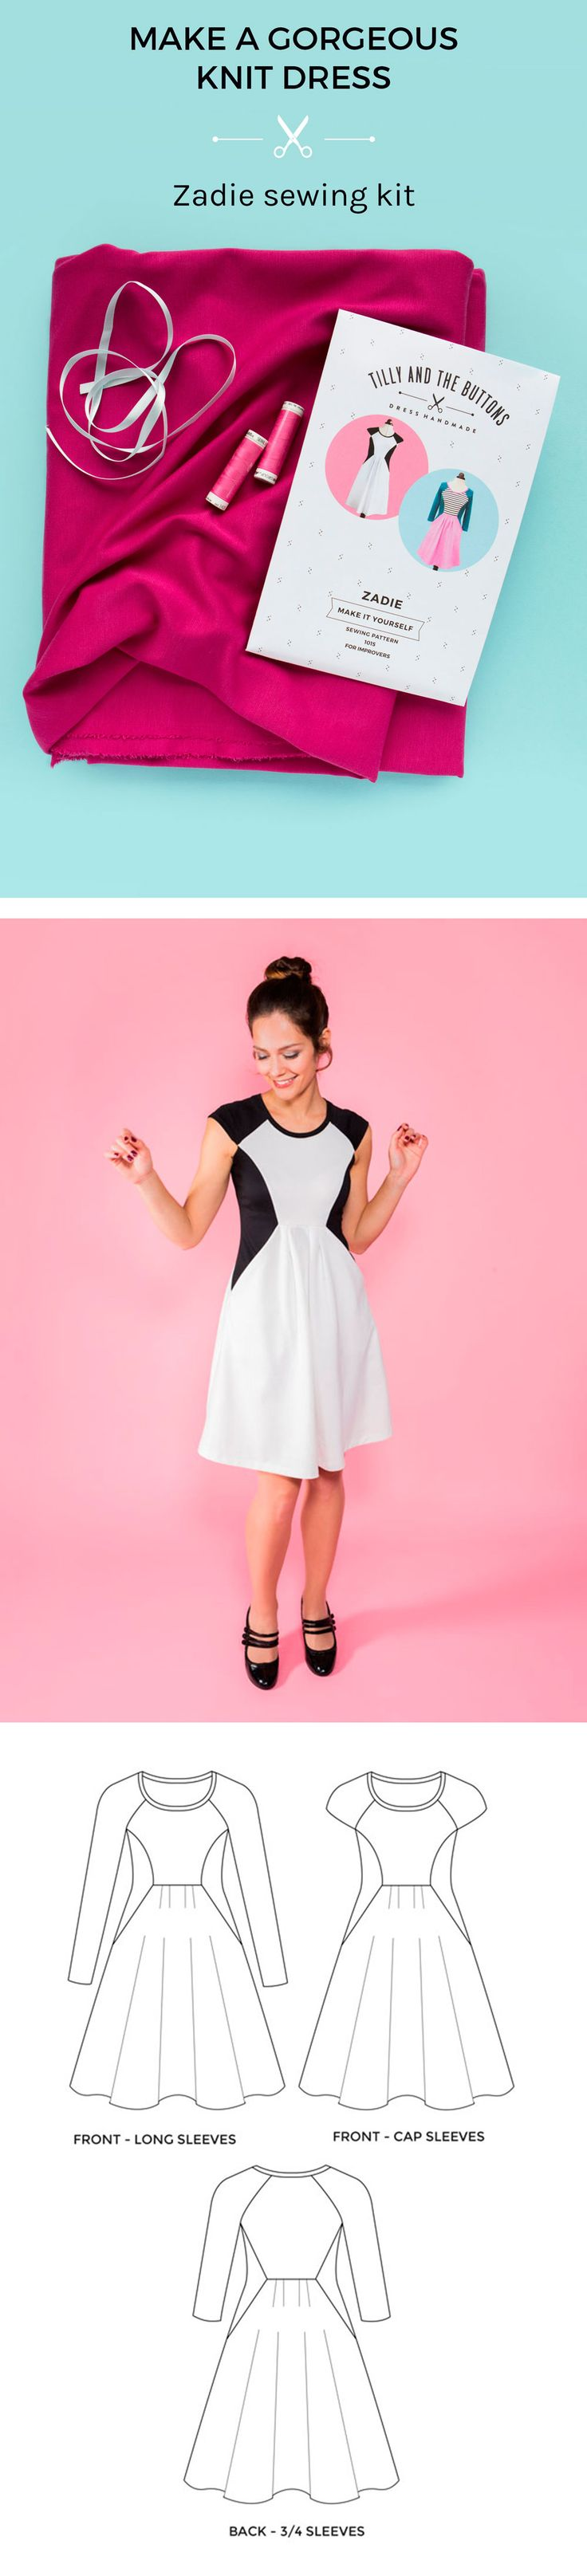 Make a gorgeous knit dress with the Zadie sewing kit.  Make your own comfortable and stylish knit dress with this sewing kit. Each kit contains all the bits and bobs you need to sew the Zadie dress